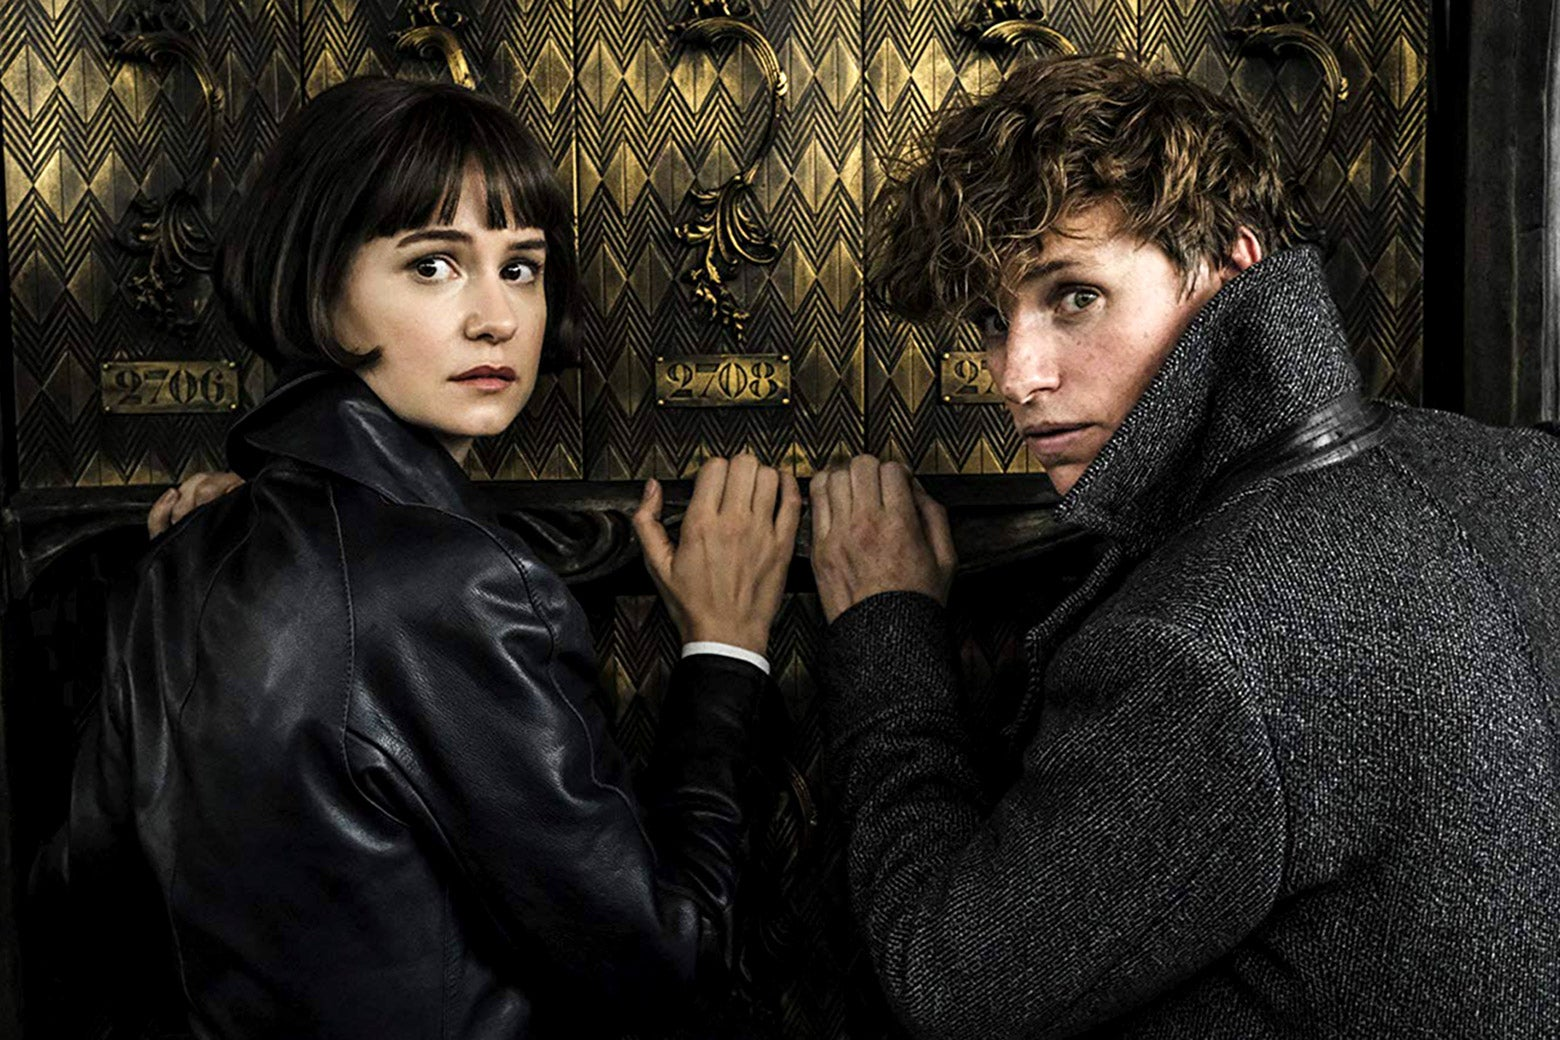 Katherine Waterston and Eddie Redmayne turn to look at the camera.